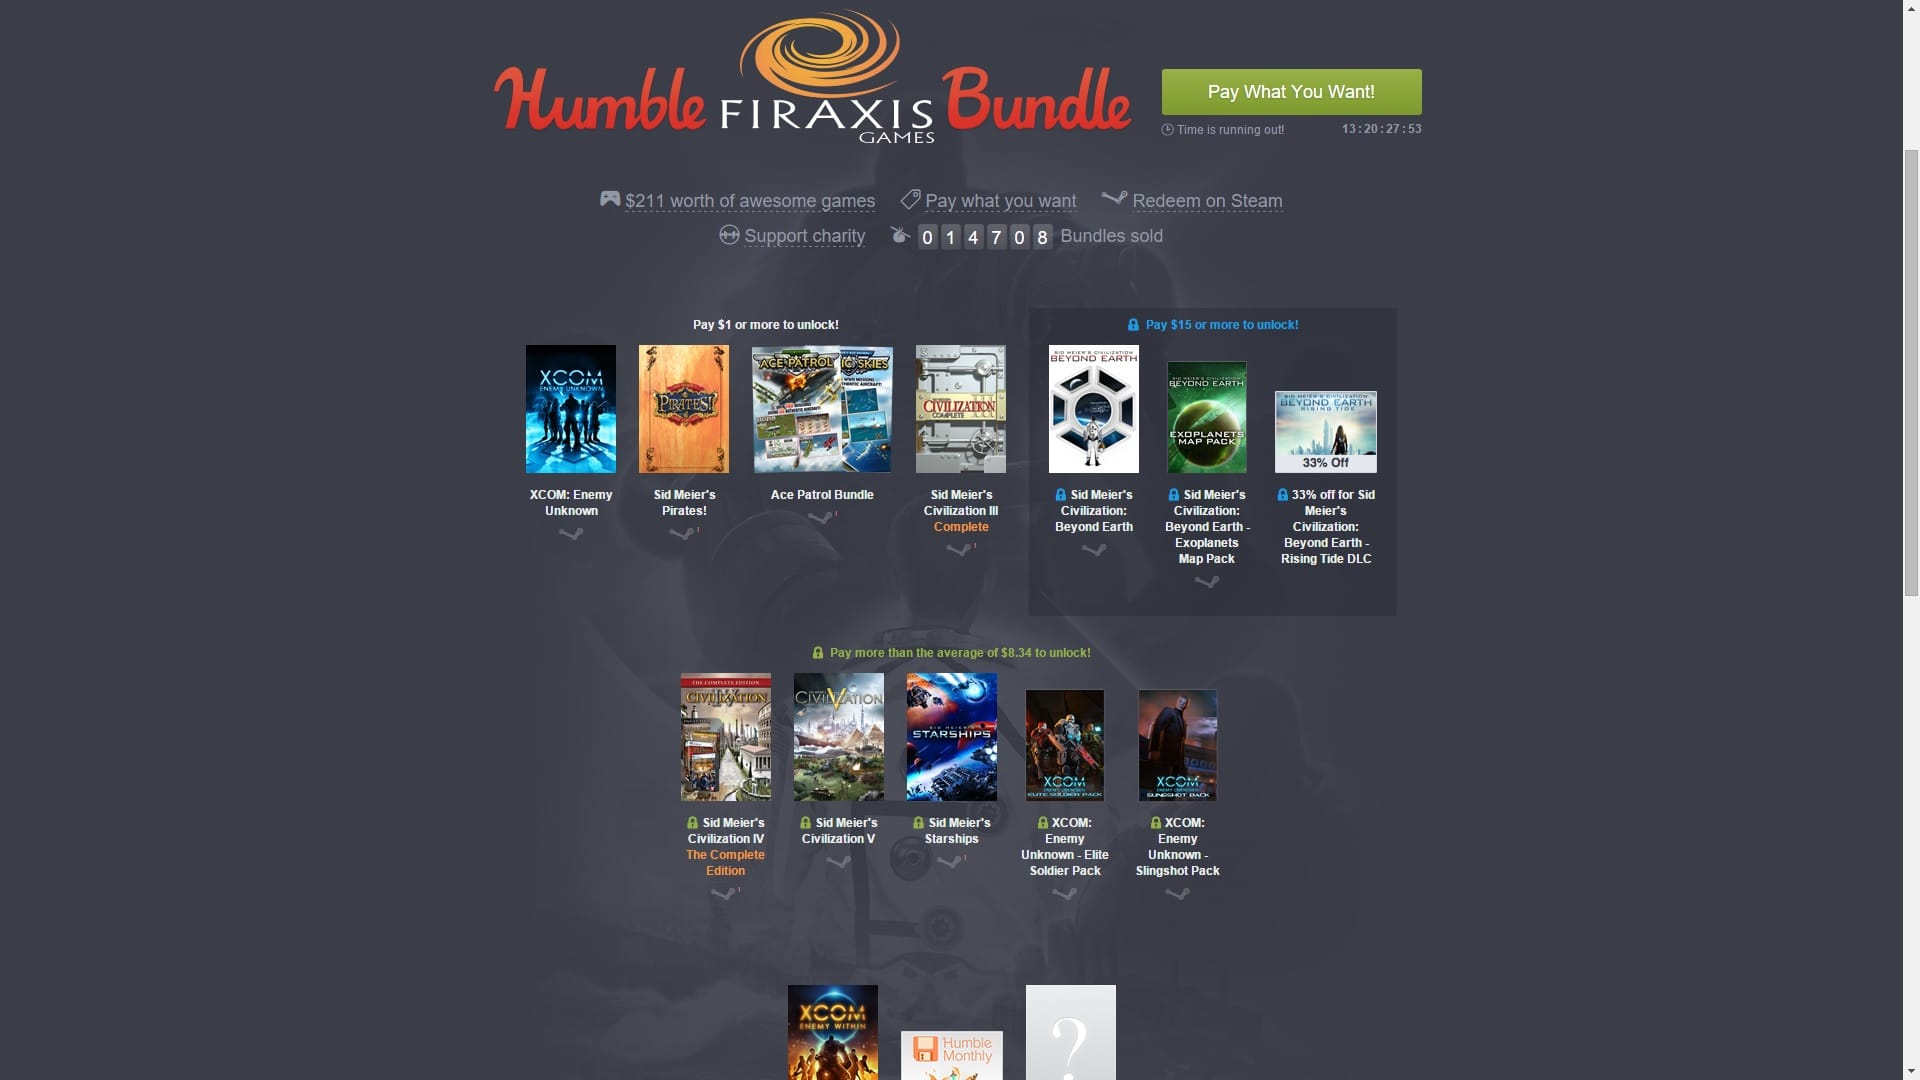 Humble Bundle Fireaxis